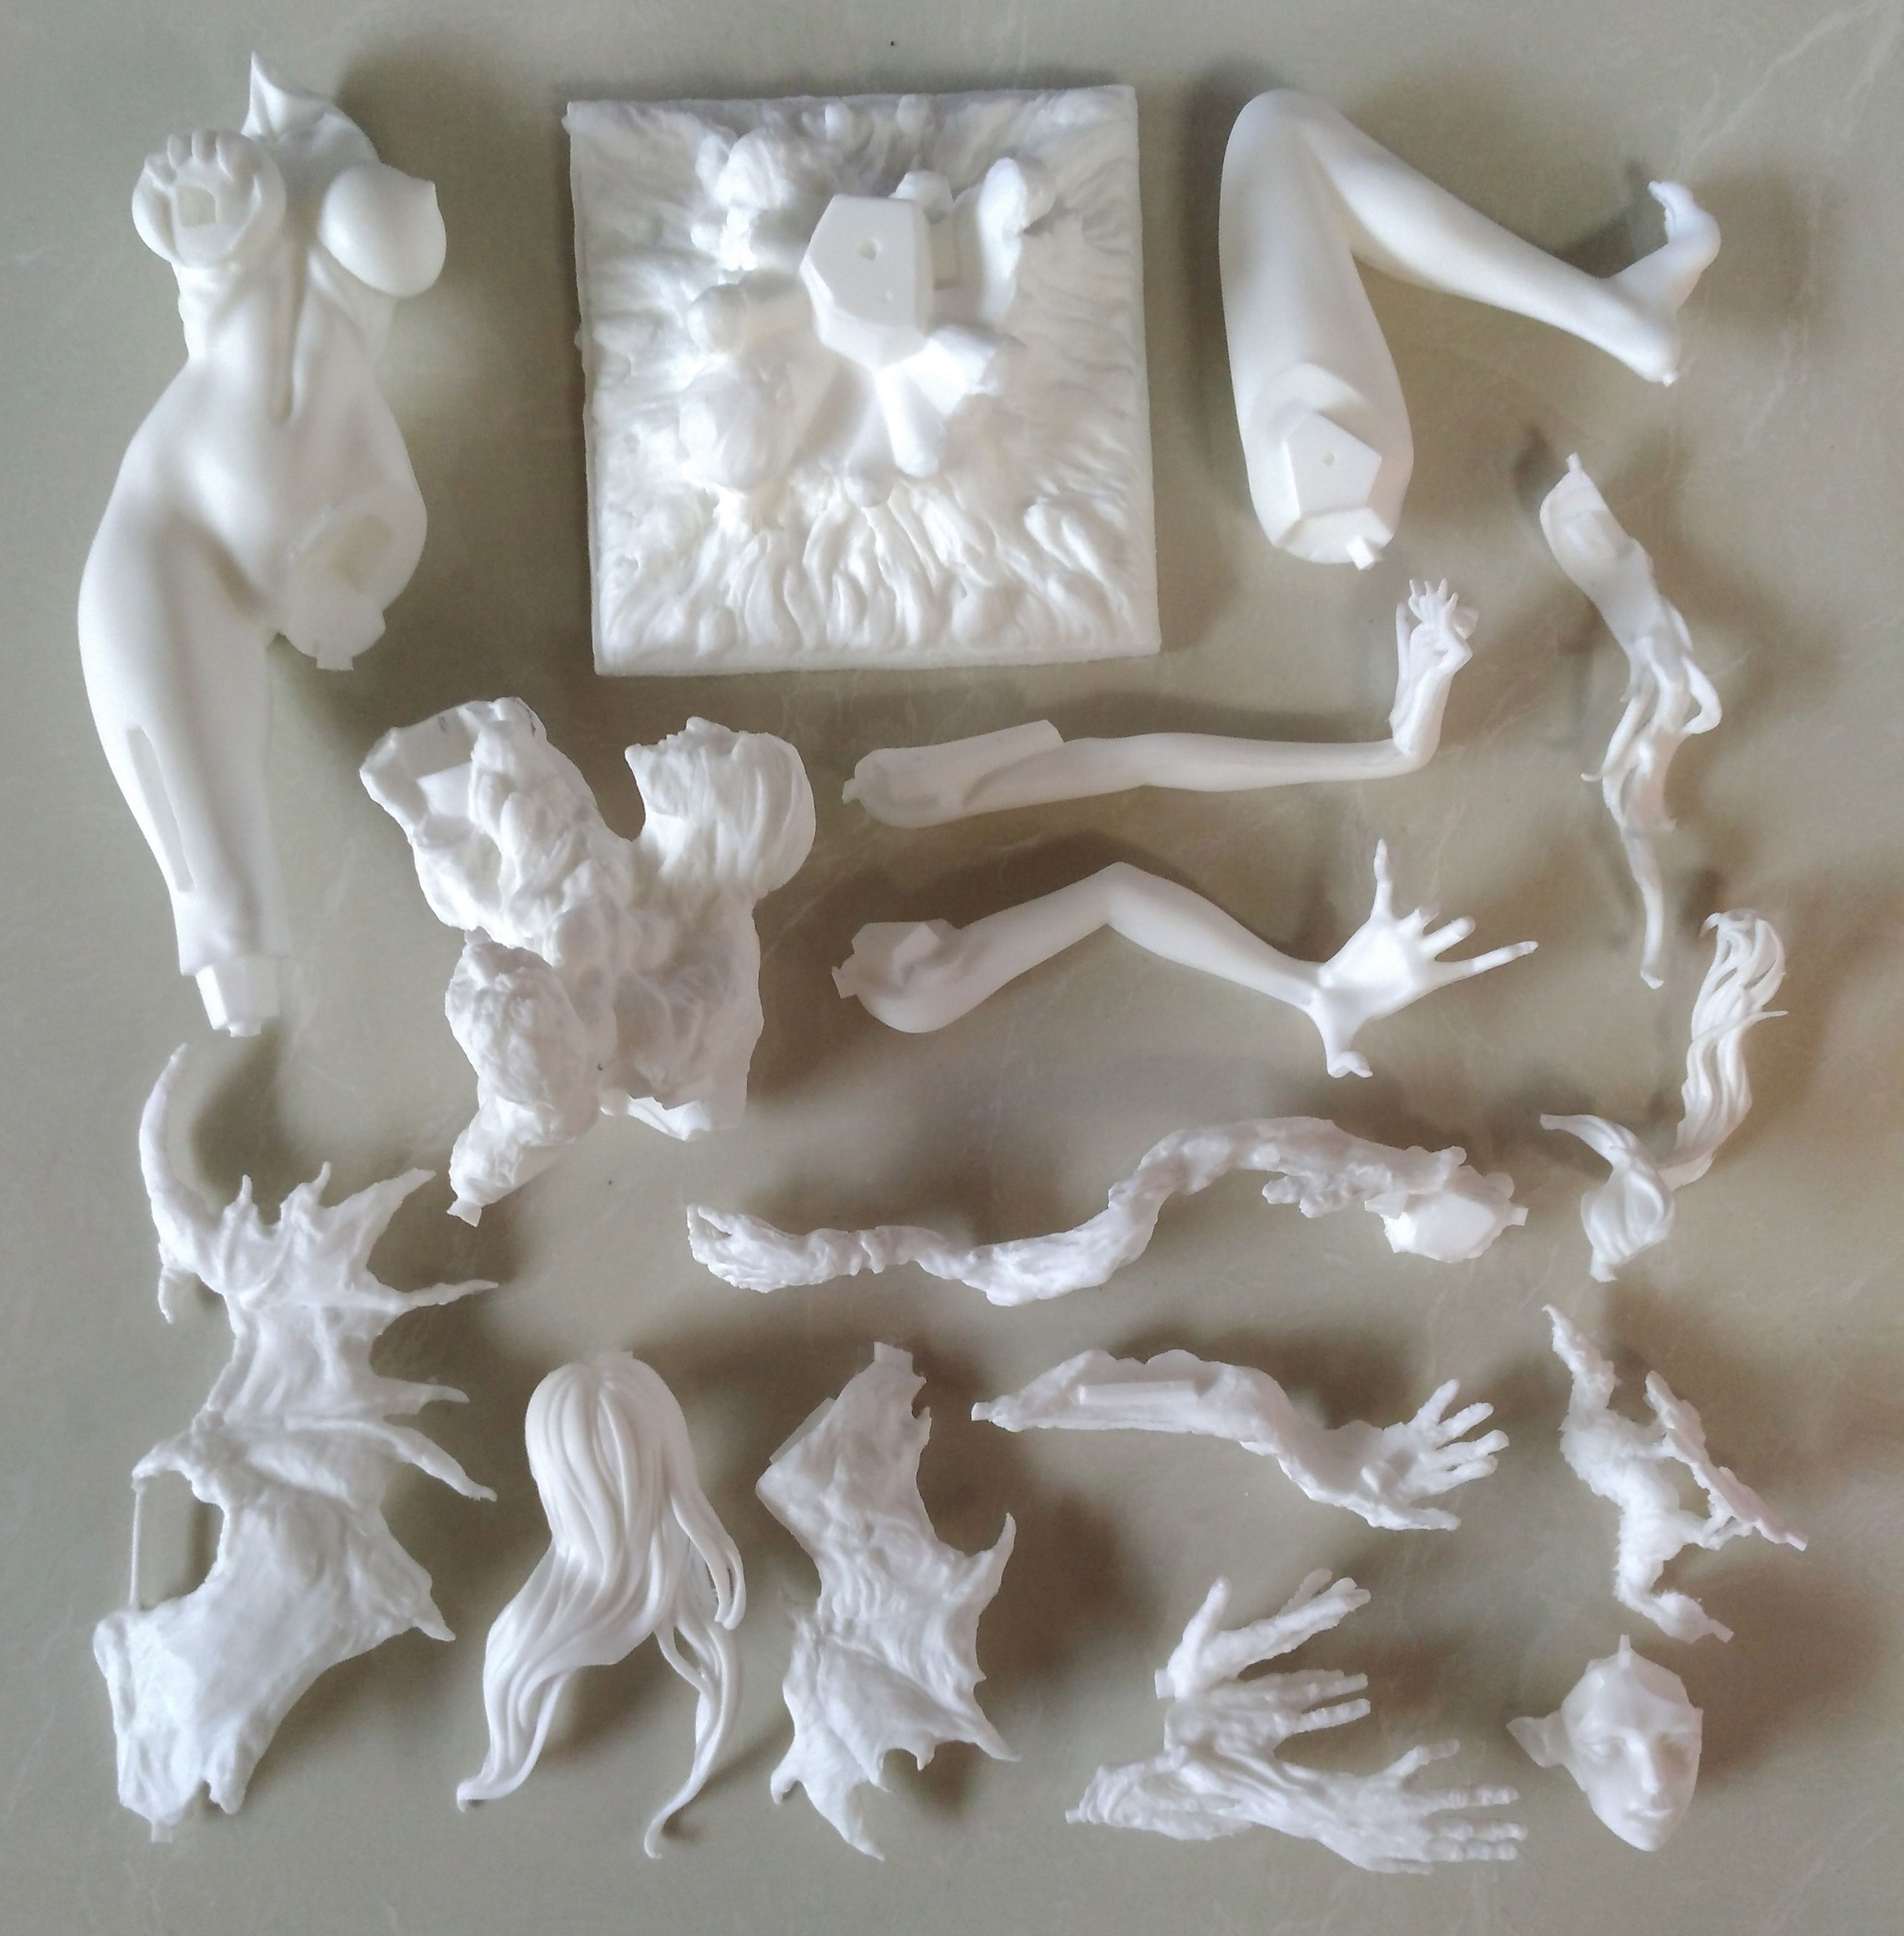 Garage Kit Unpainted Garage Resin Model Kit SUCCUBUS Resin Figure Kit